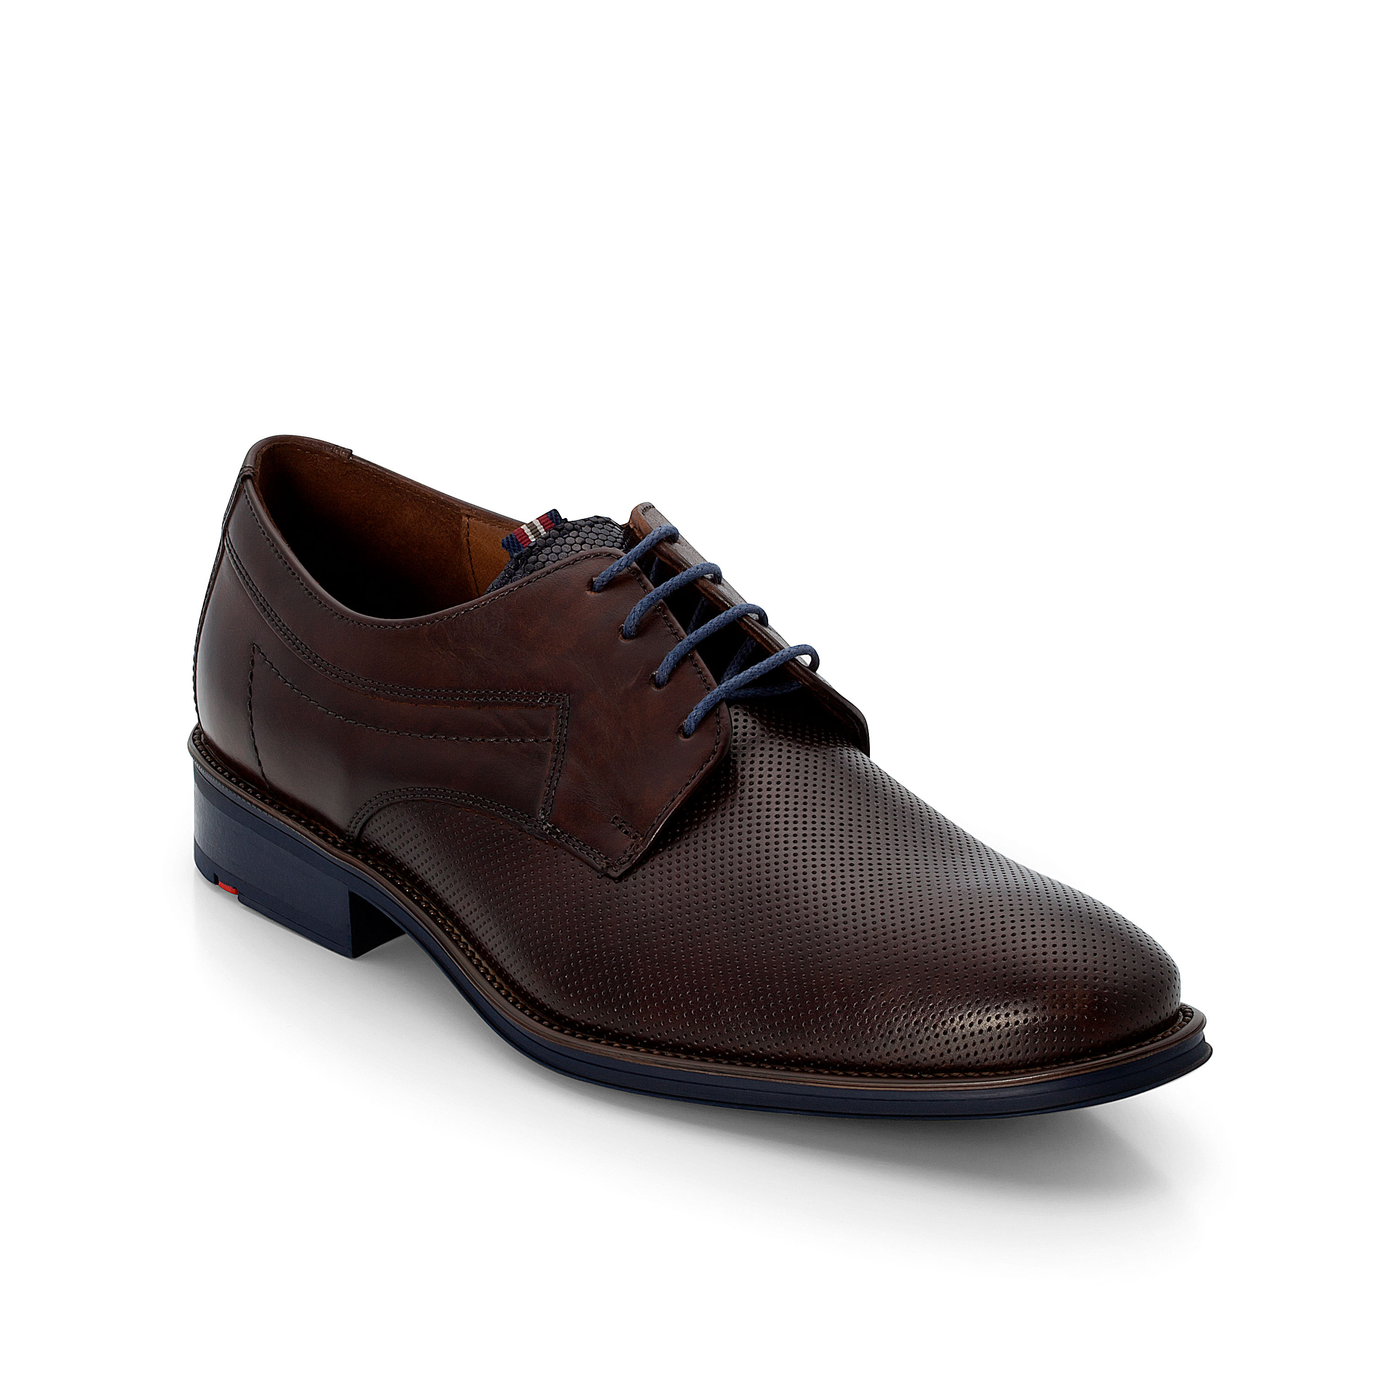 GAVINO EMBOSSED LEATHER LACE UP SHOE DARK BROWN